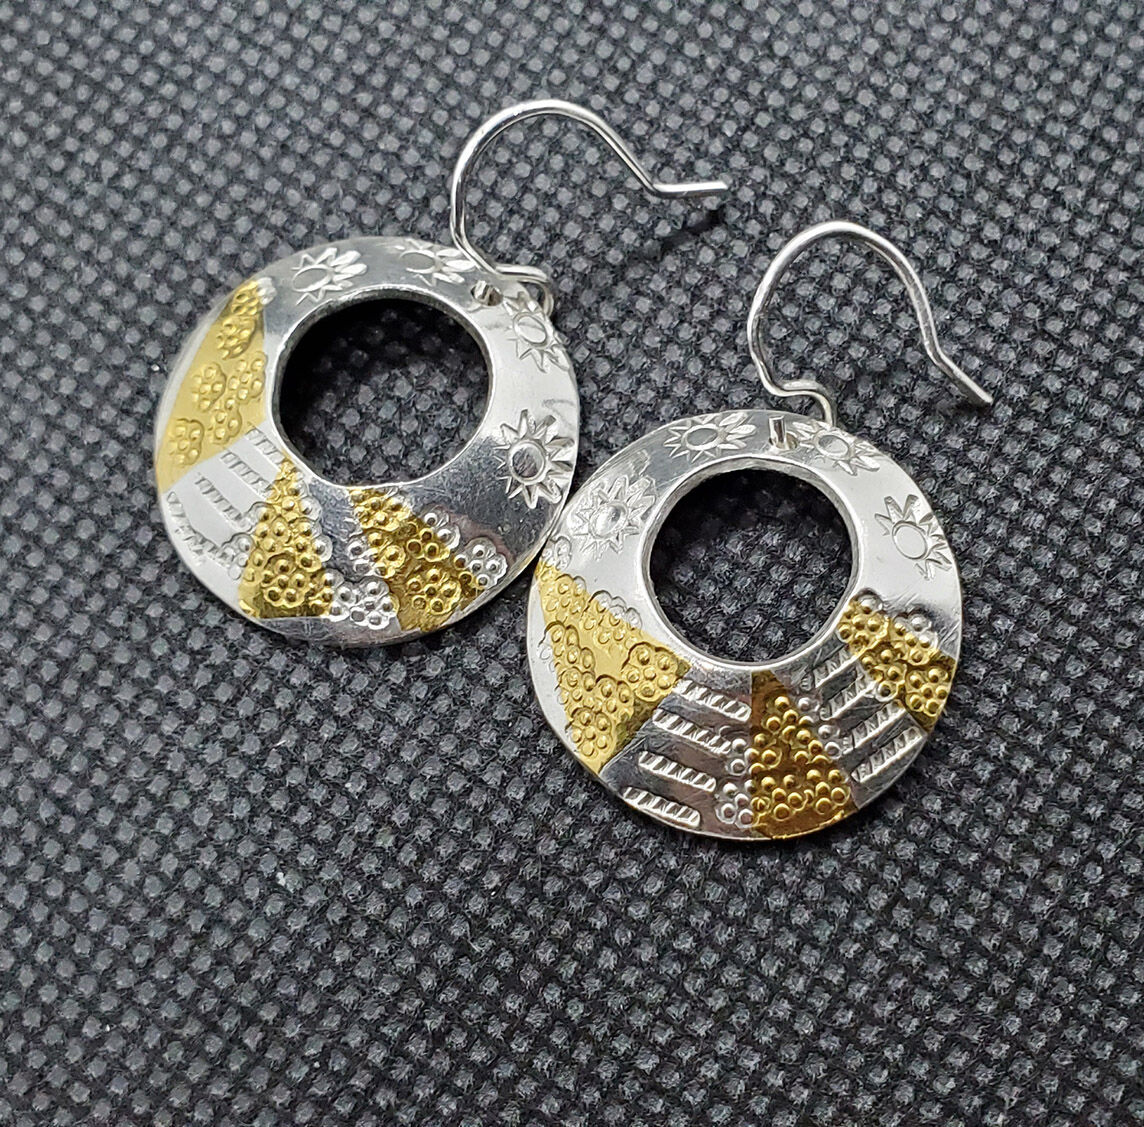 E19040 - Off-centre hoop earrings with silver and gold